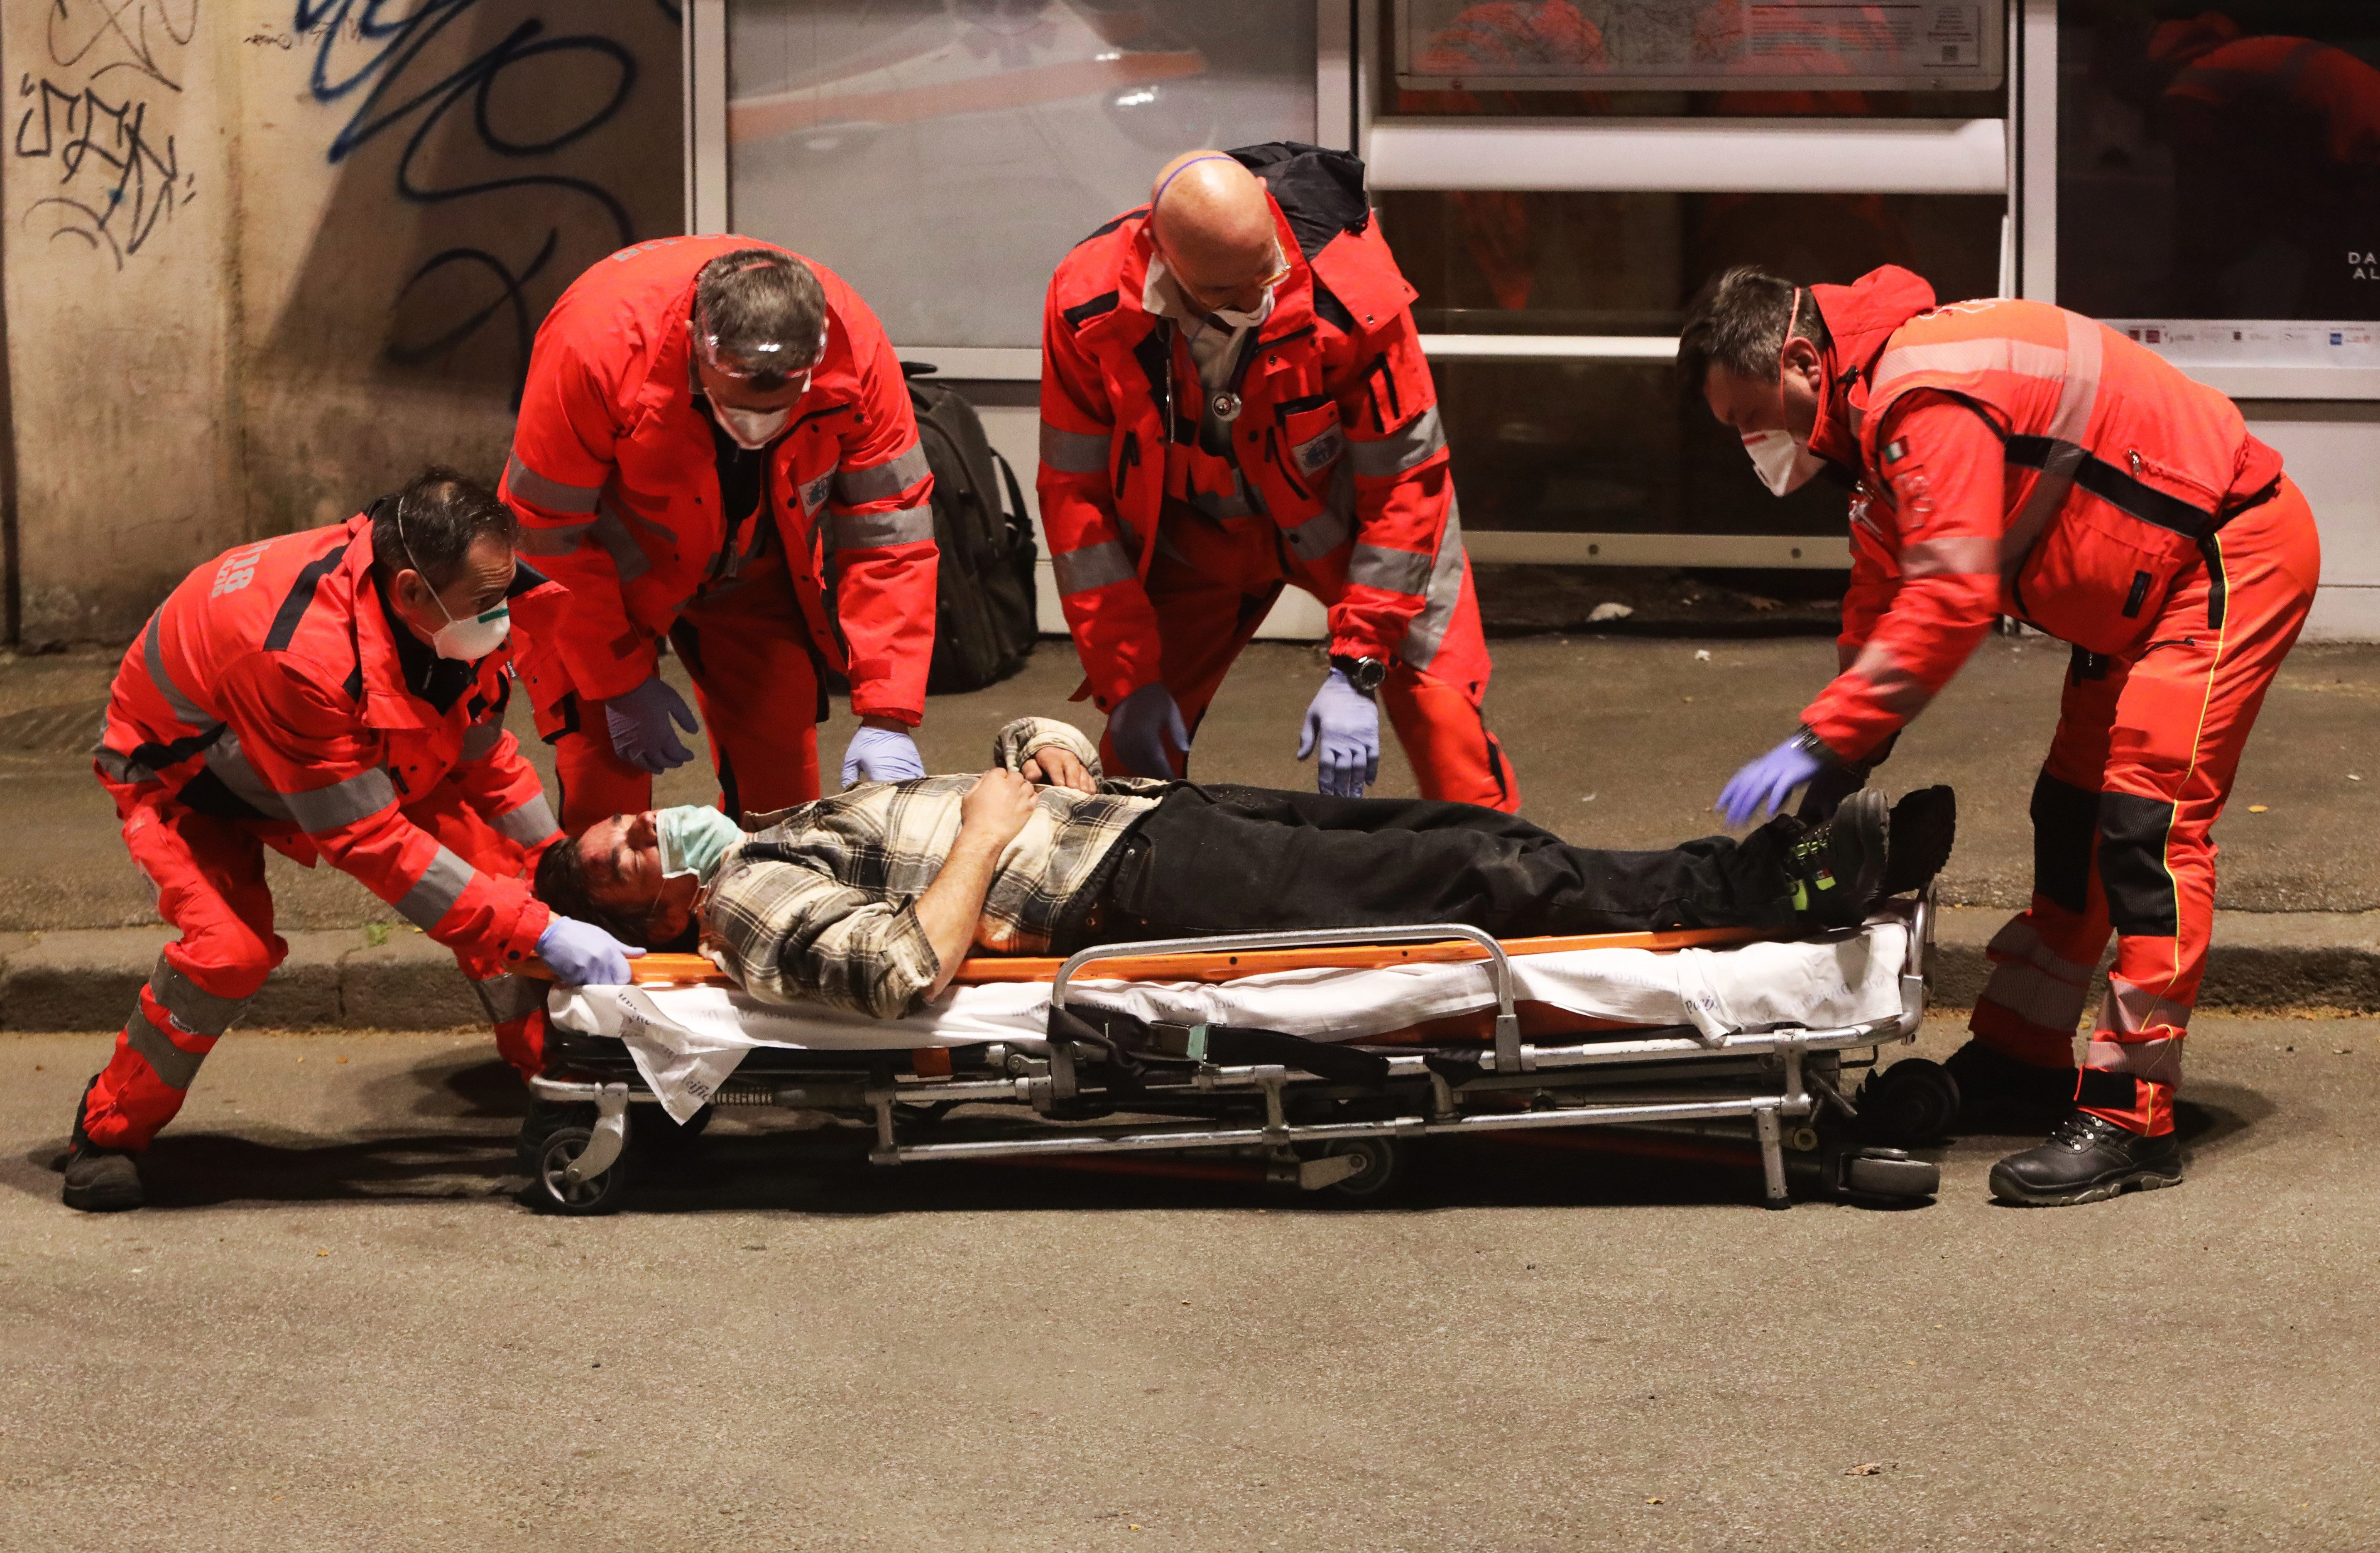 The man is seen being loaded onto a stretcher in Rome